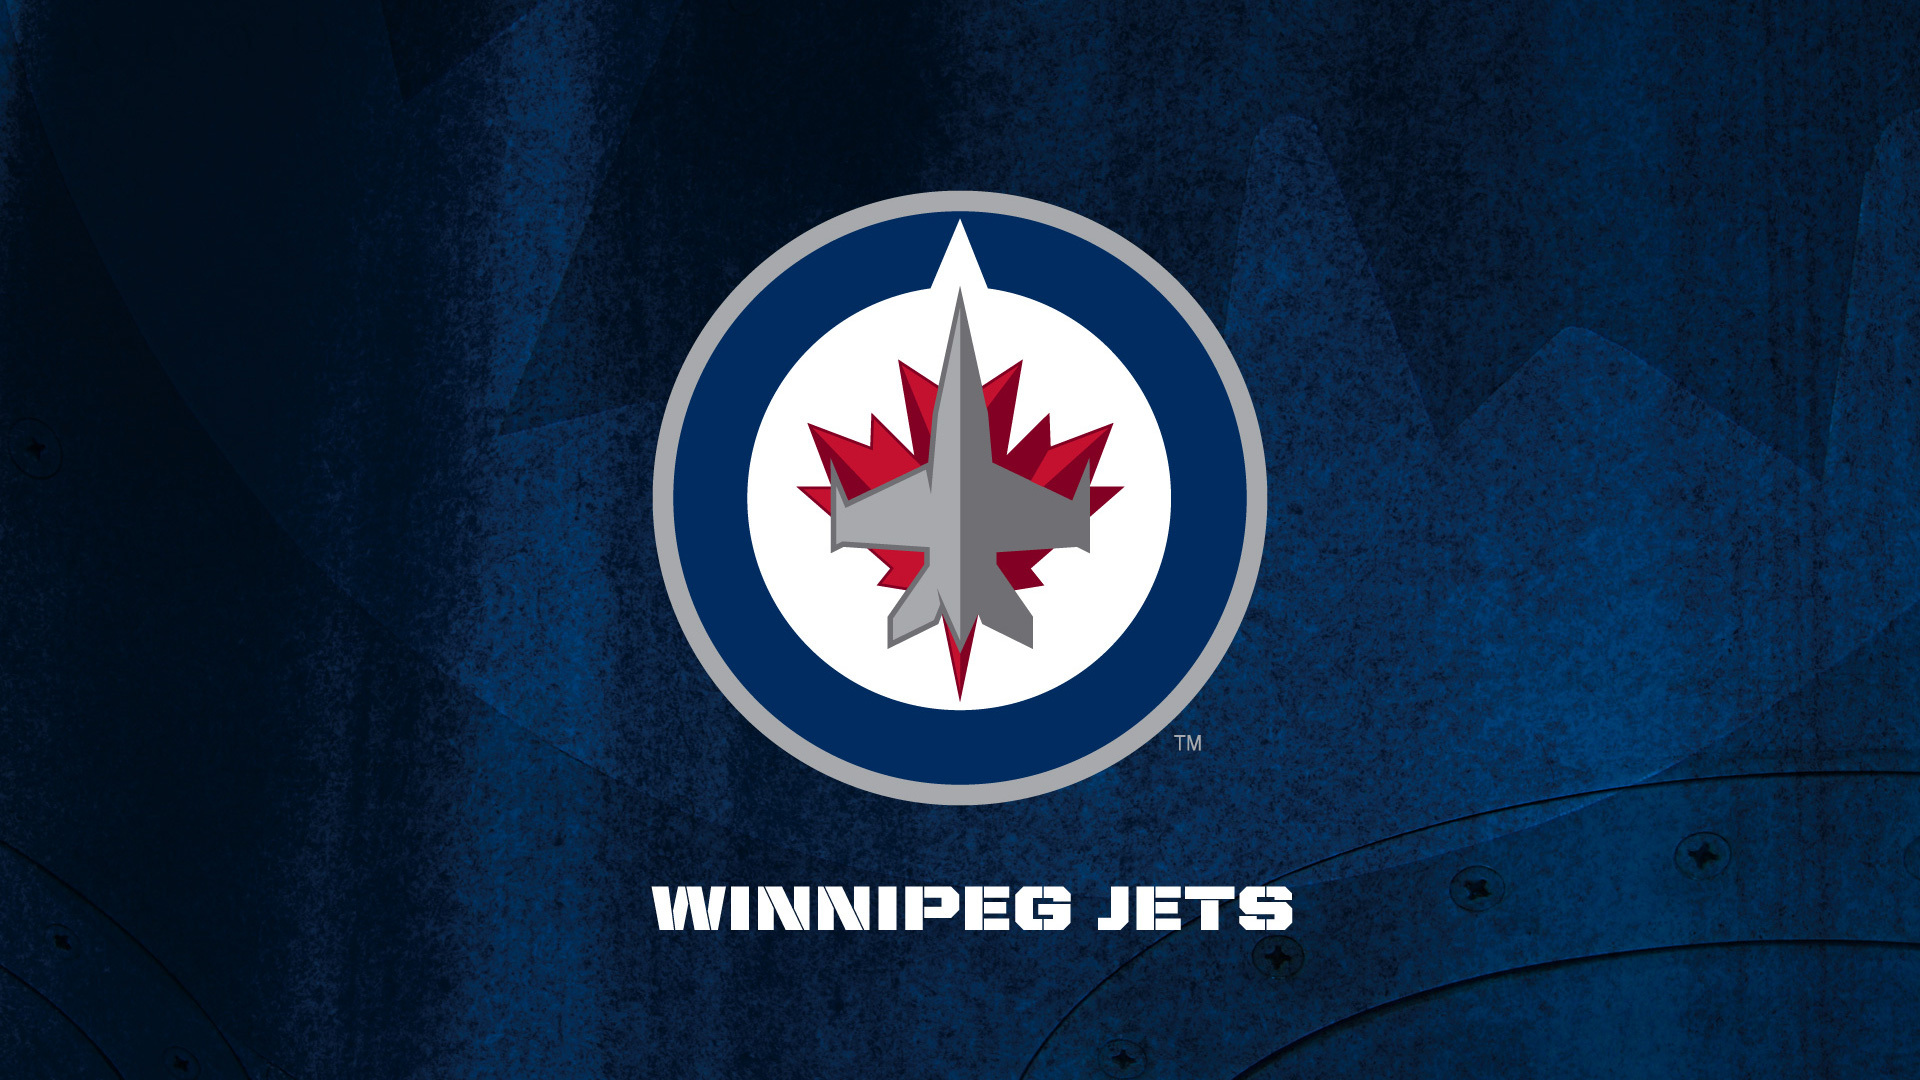 Nhl Logo Wallpaper 1920x1080